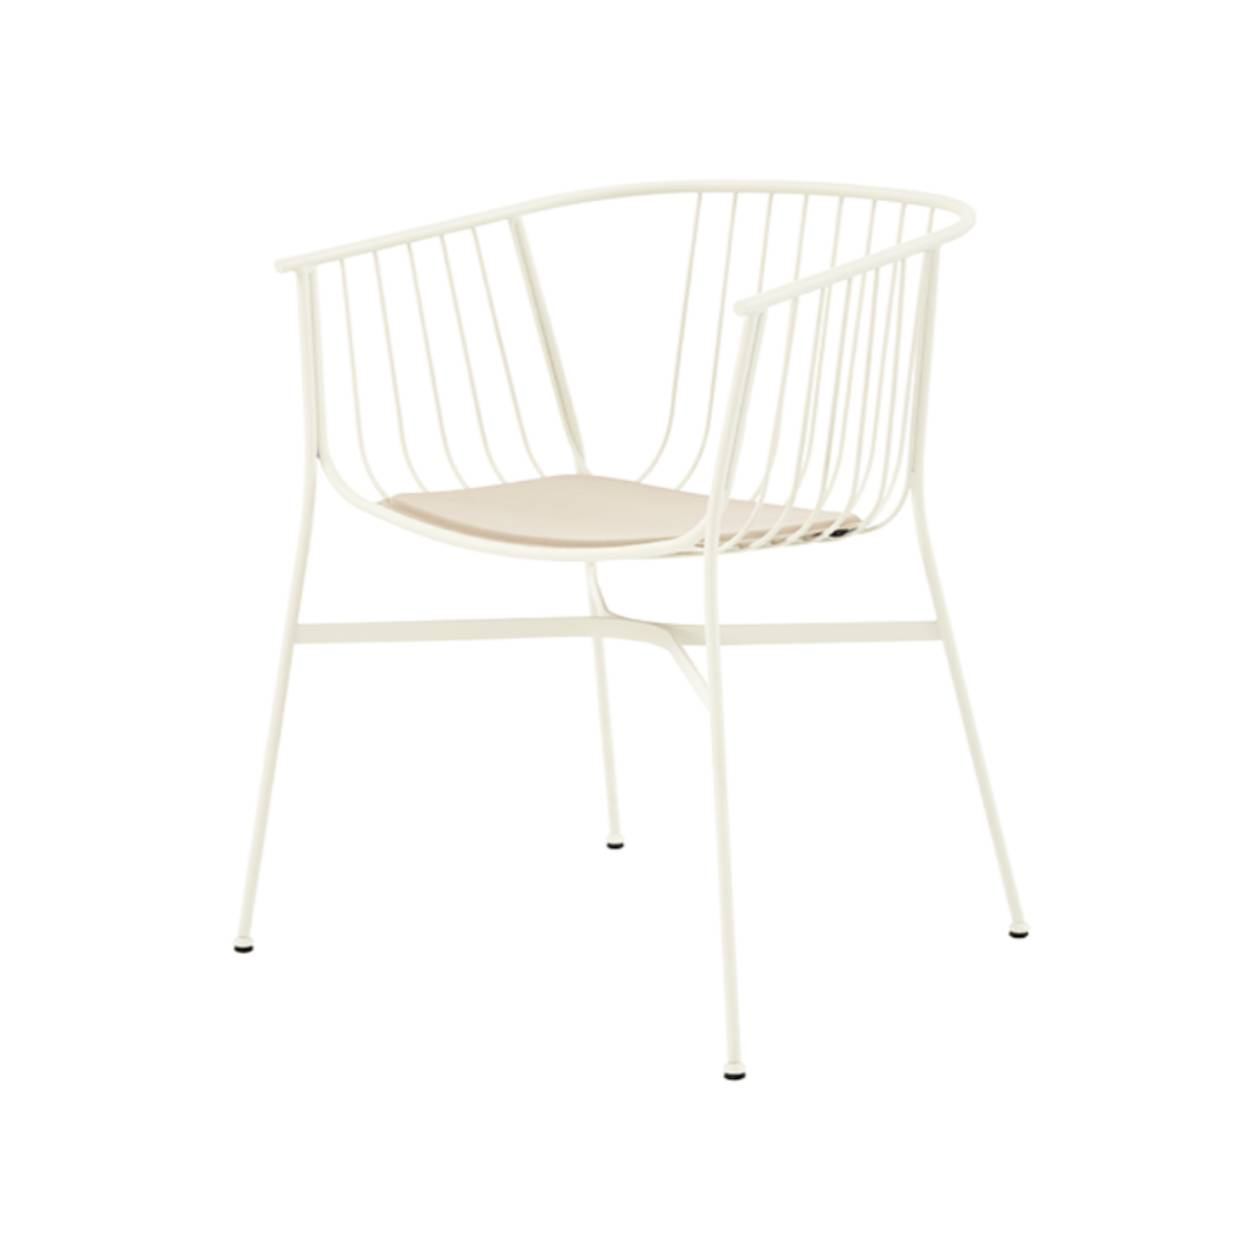 Jeanette Chair: White + Light Greige Seat Pad